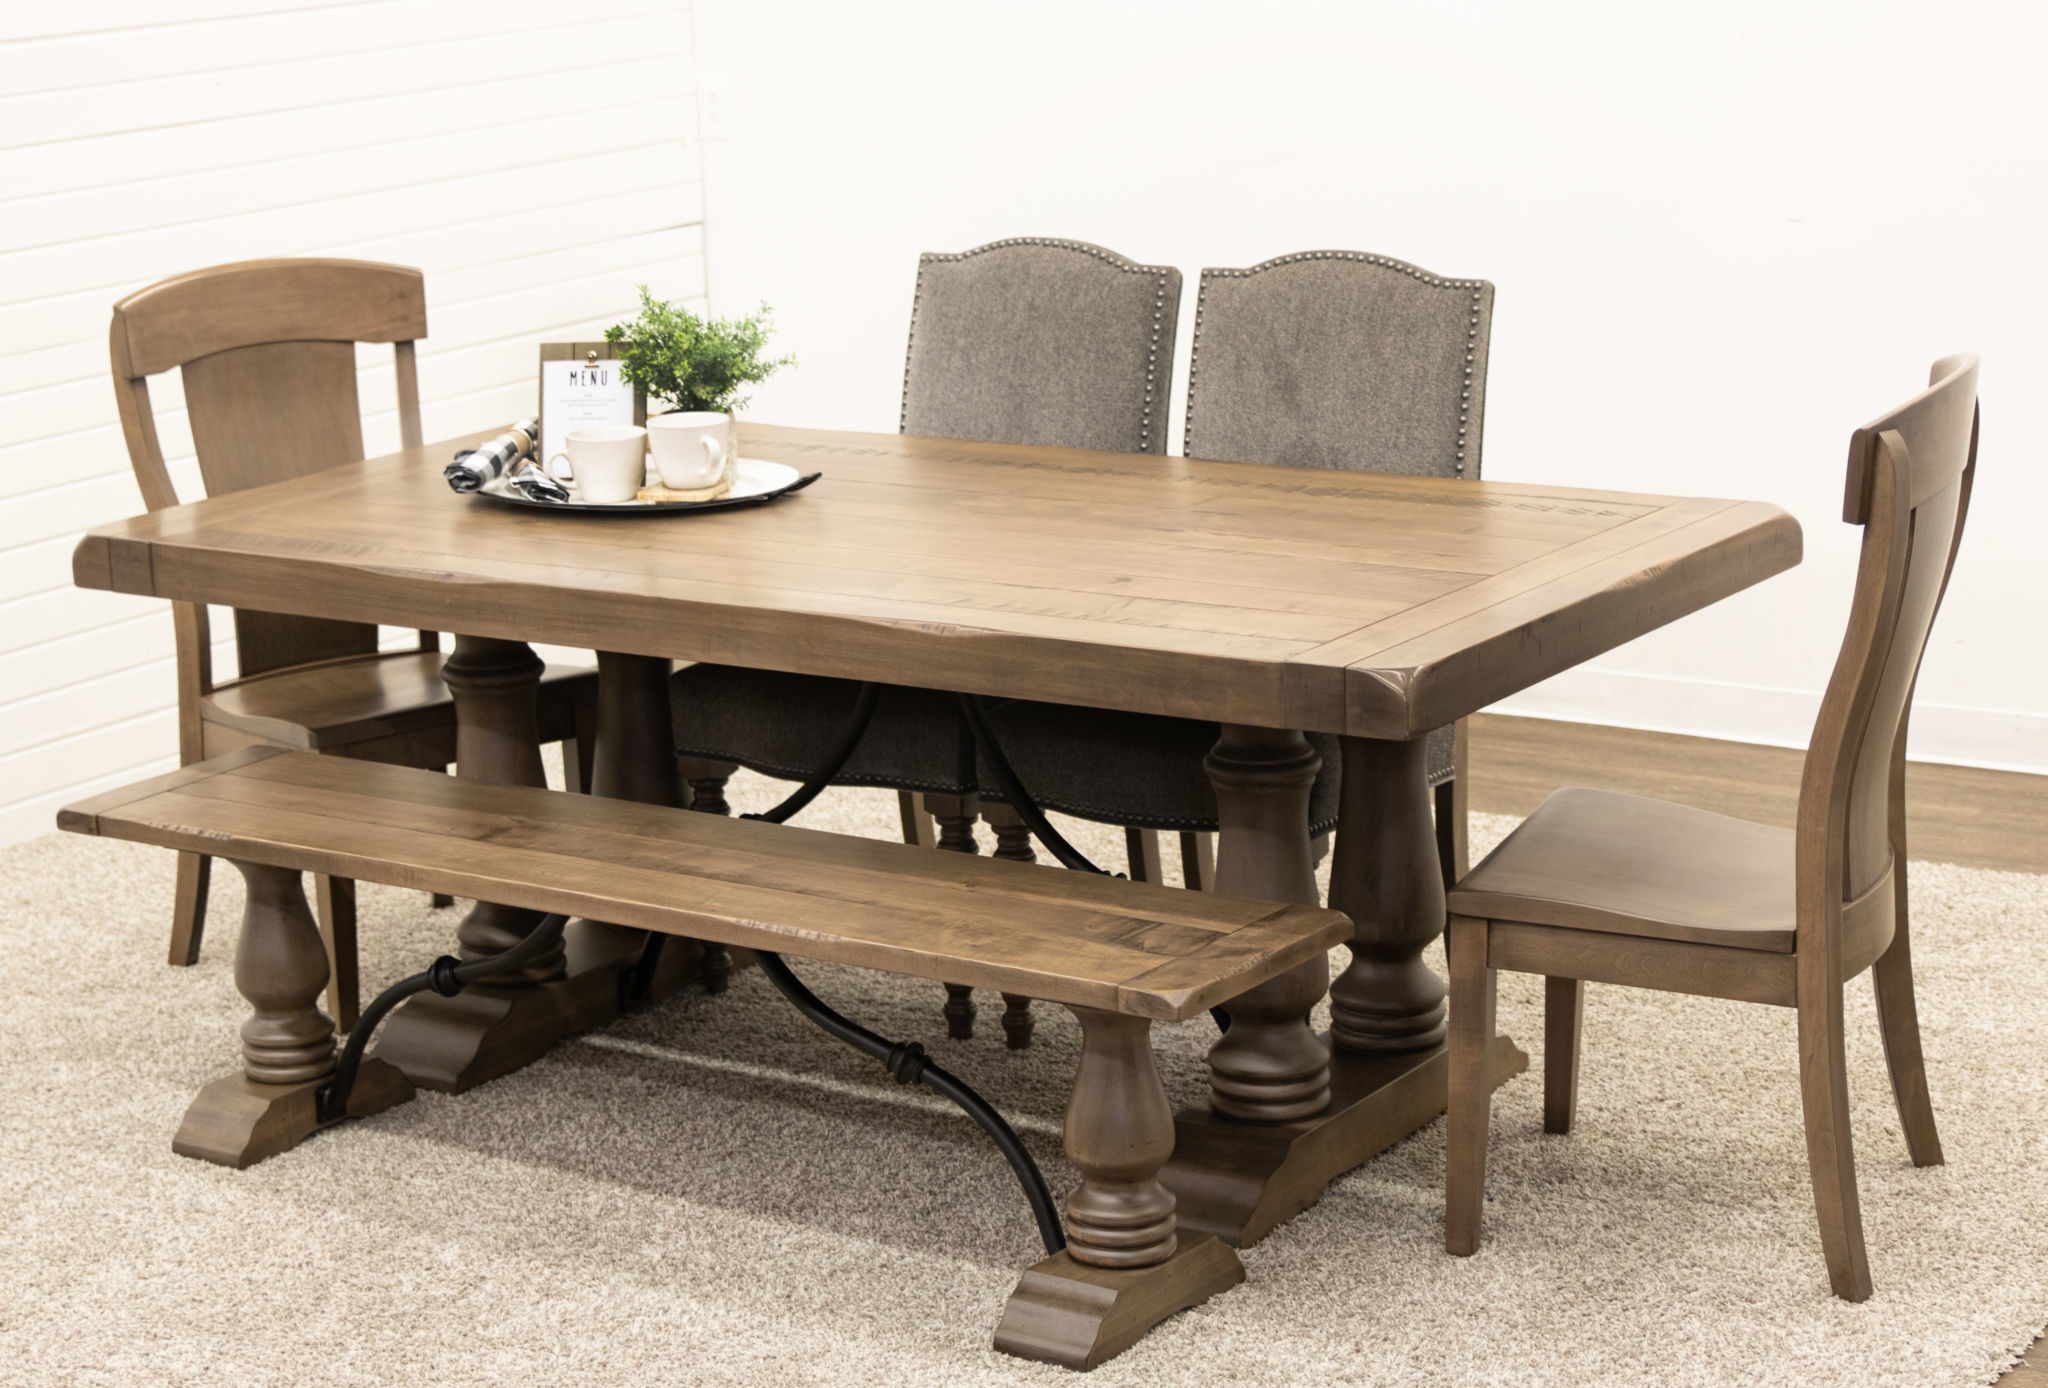 Incredible Alexandria Dining Table With 2 Kowan Chairs 2 Shreveport Chairs 1 Alexandria Bench Alexandria Dining Table With 2 Kowan Chairs 2 Shreveport Gmtry Best Dining Table And Chair Ideas Images Gmtryco